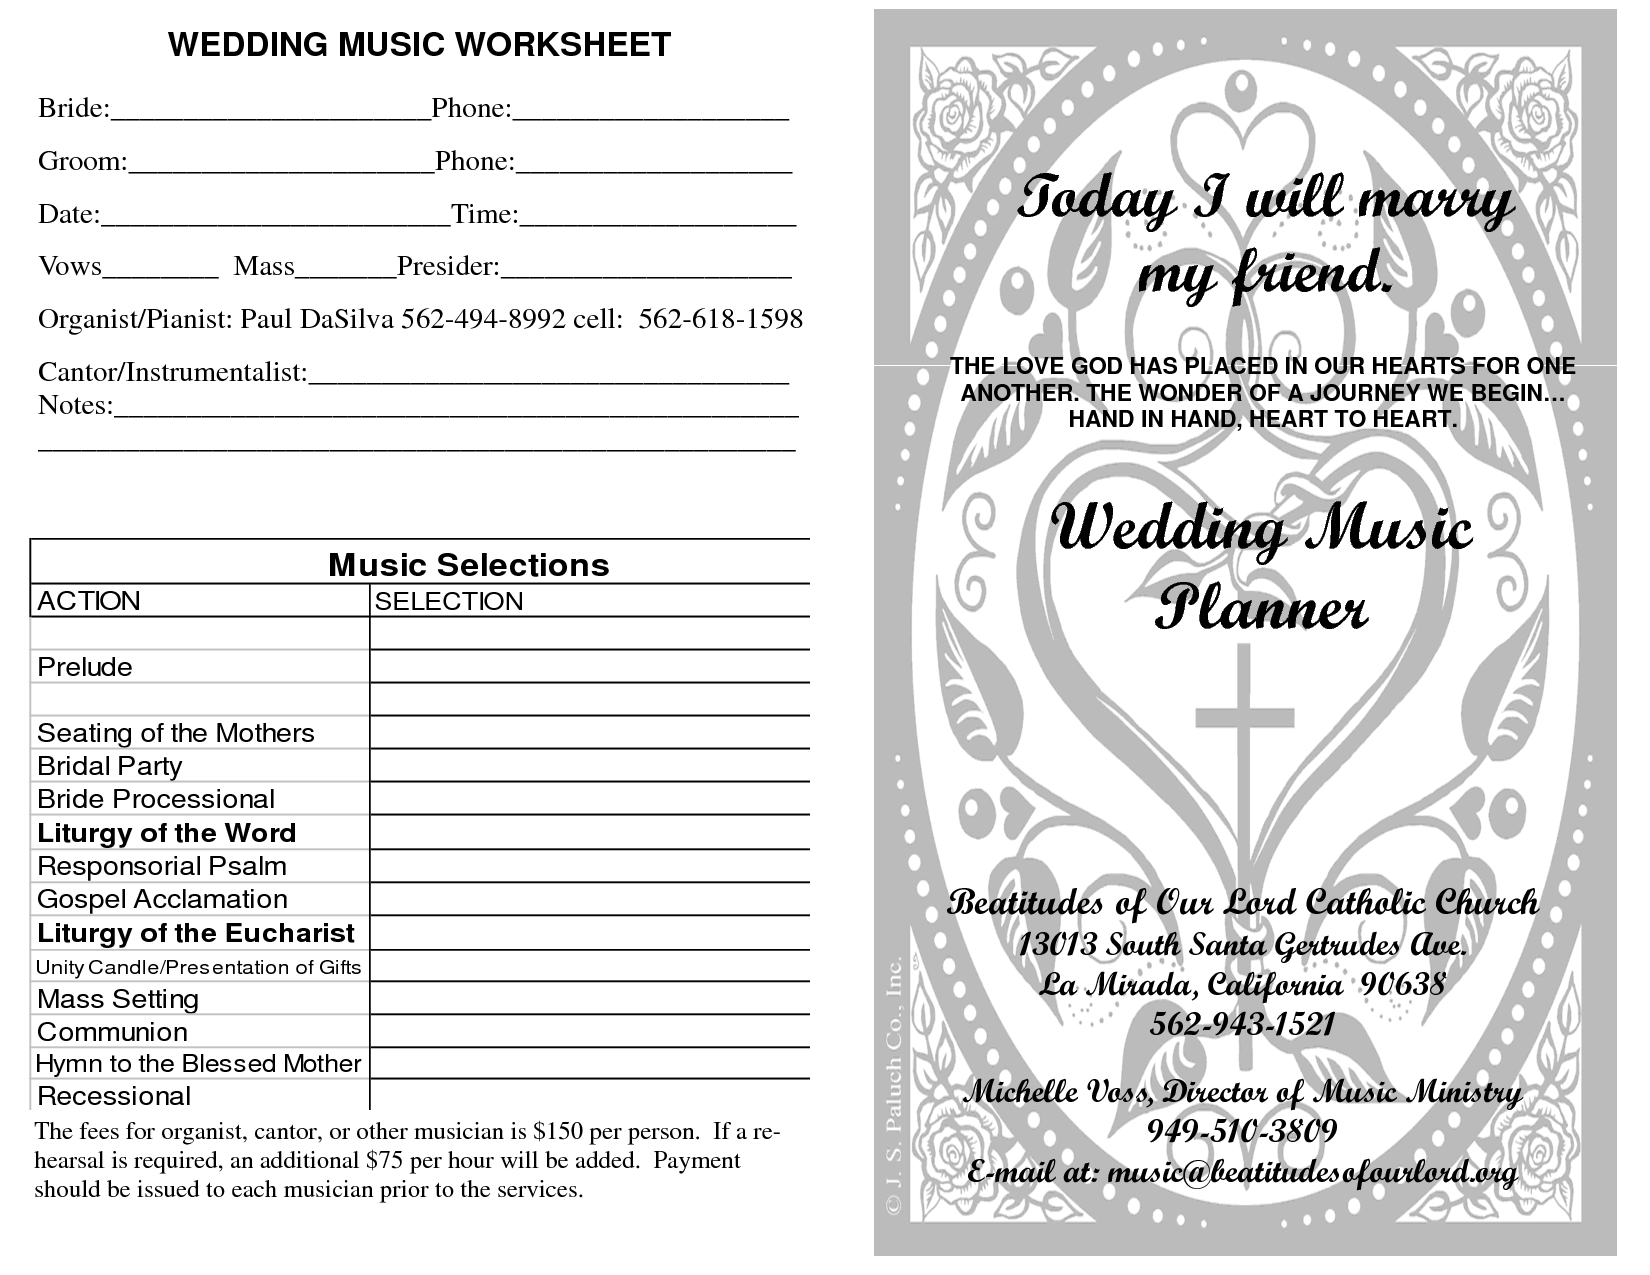 Beatitudes Worksheet Wedding Music Planner1